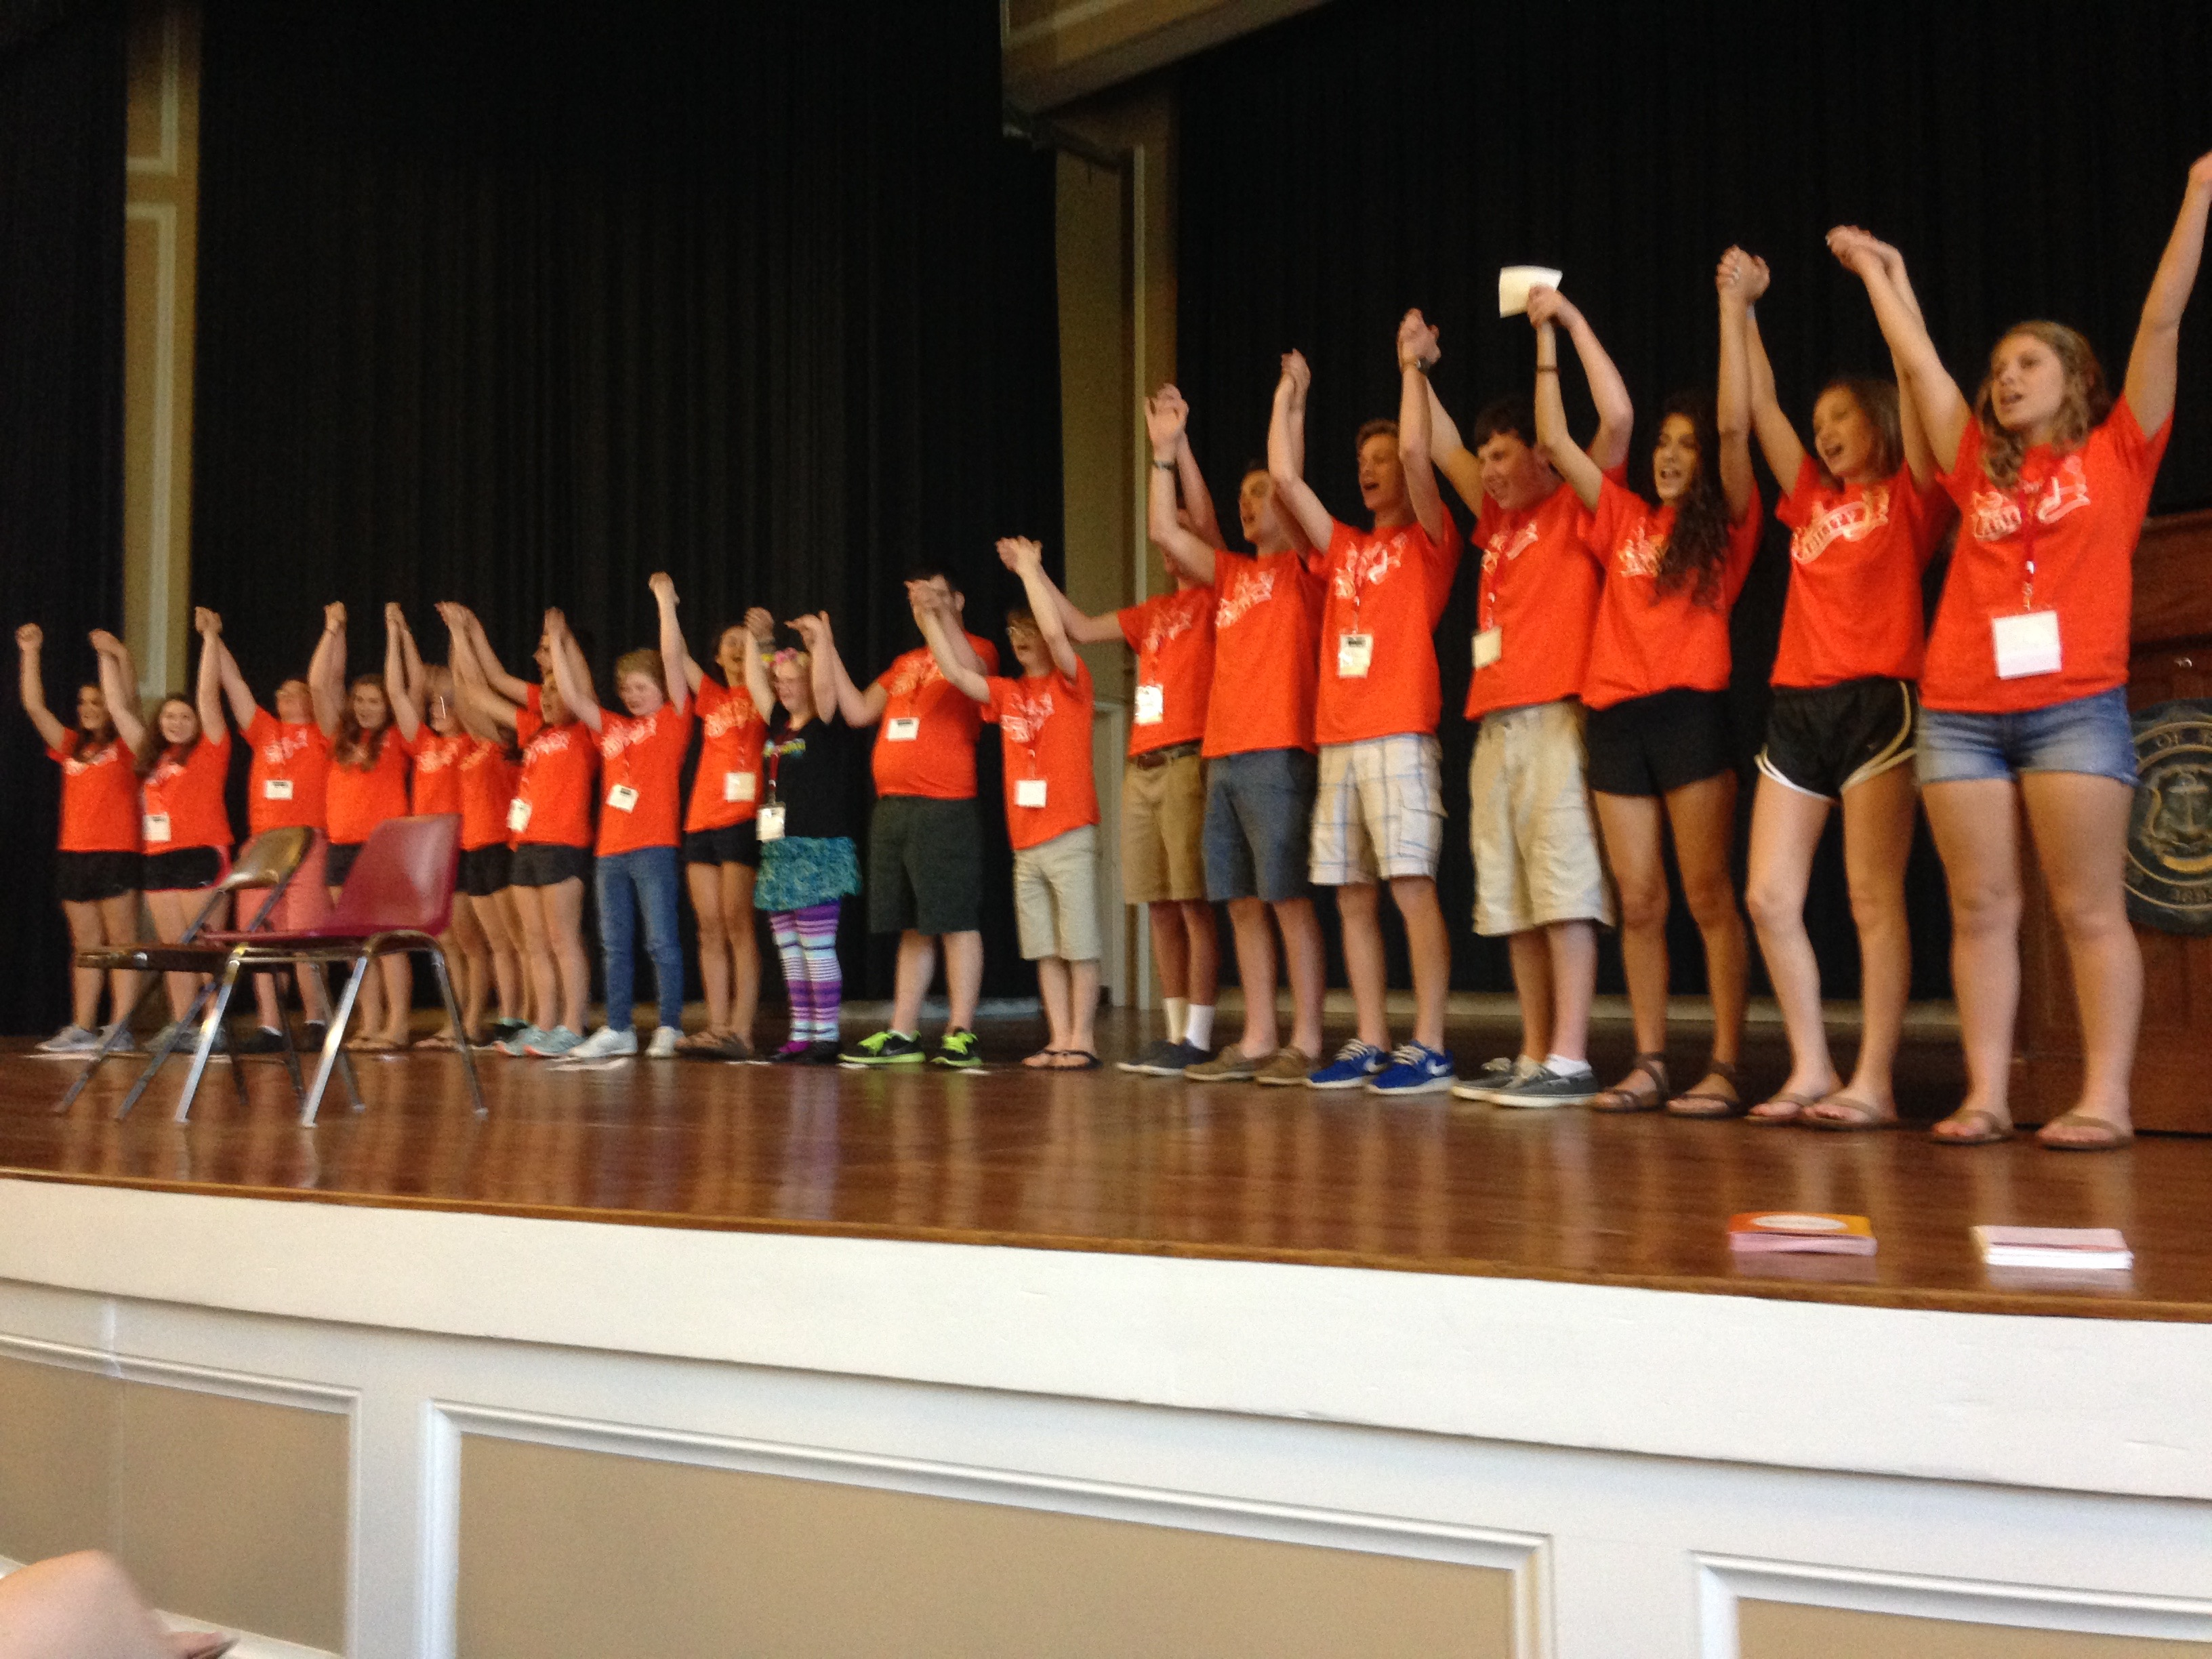 A line of teens on stage in a line, all wearing orange Unified Theater t-shirts